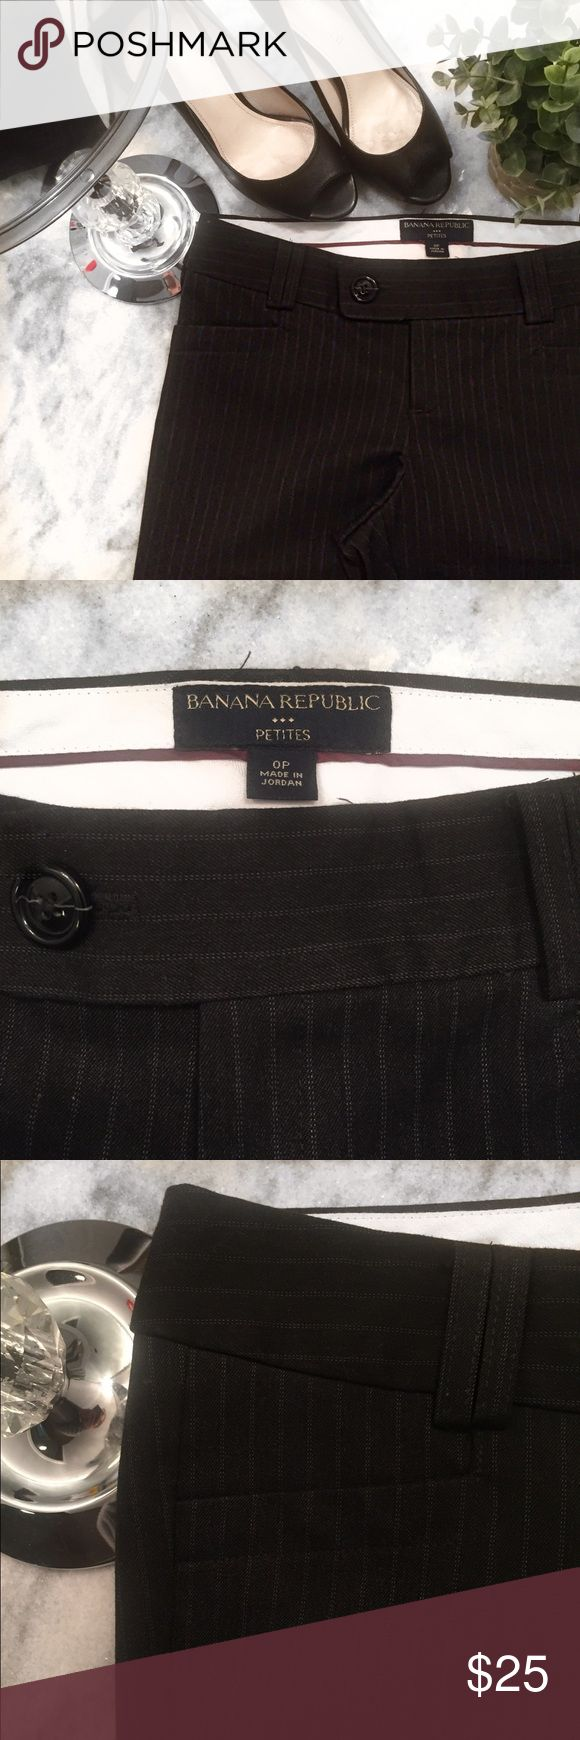 Black dress pants size 0 jordans